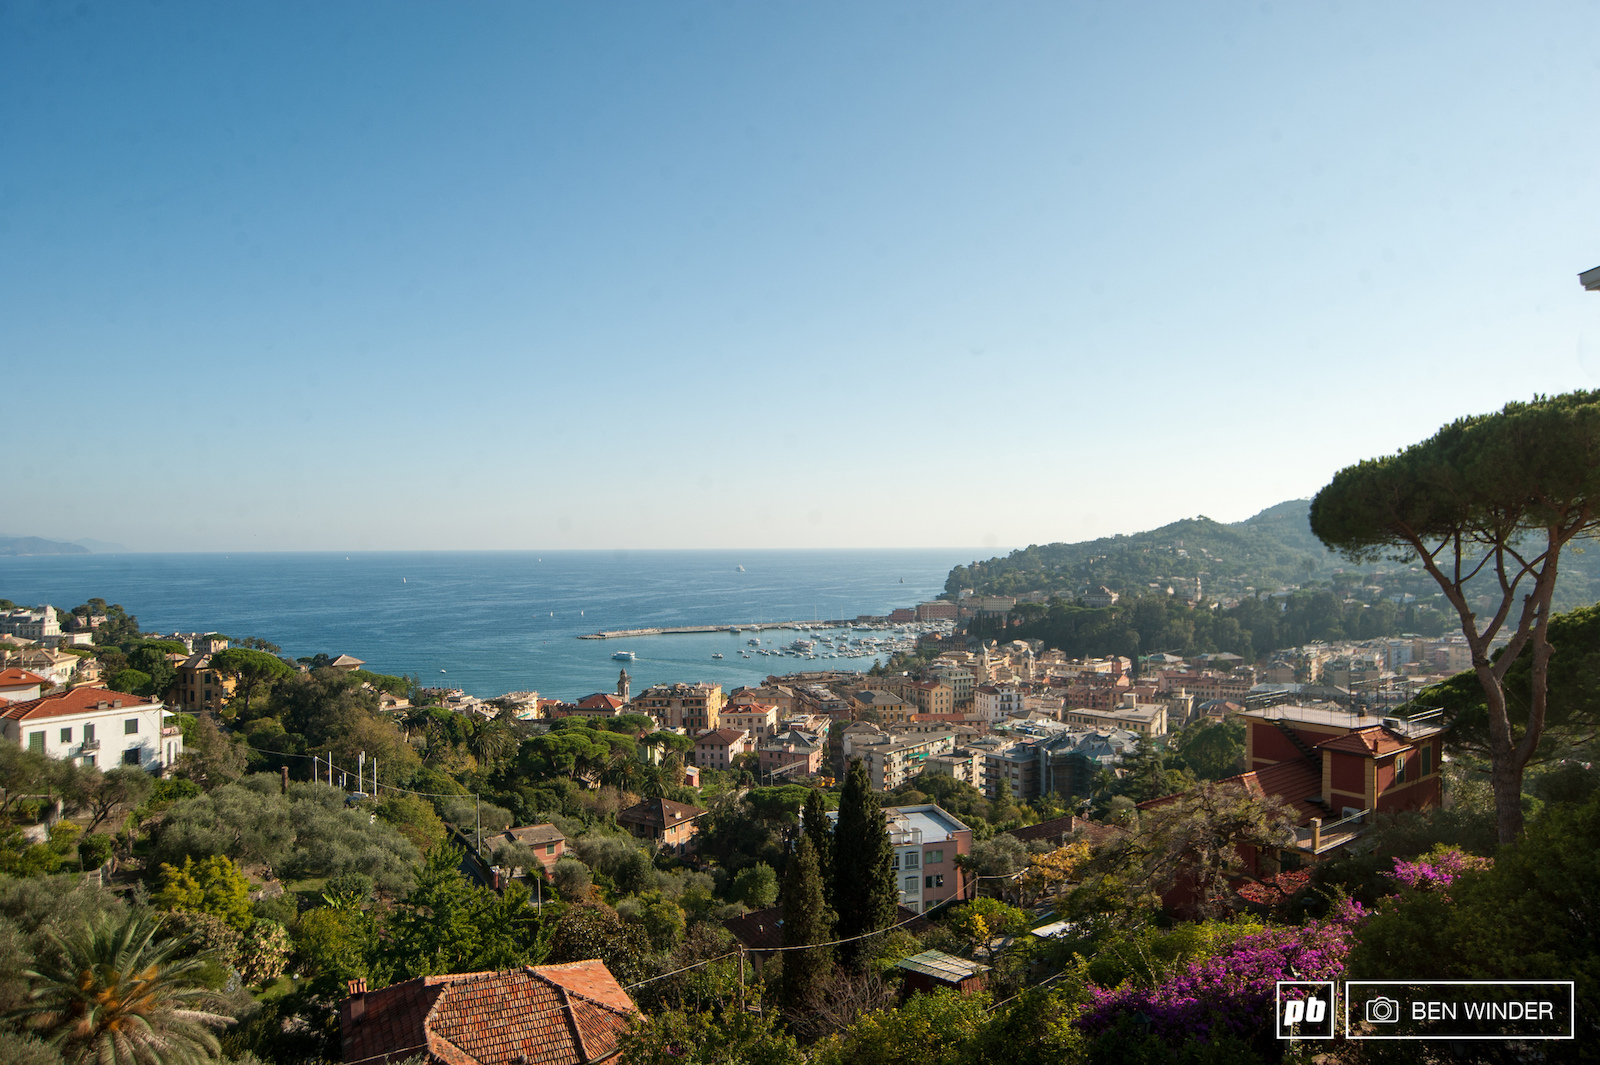 A stunning Ligurian cove just over an hour away from the mountain bike mecca that is Finale.